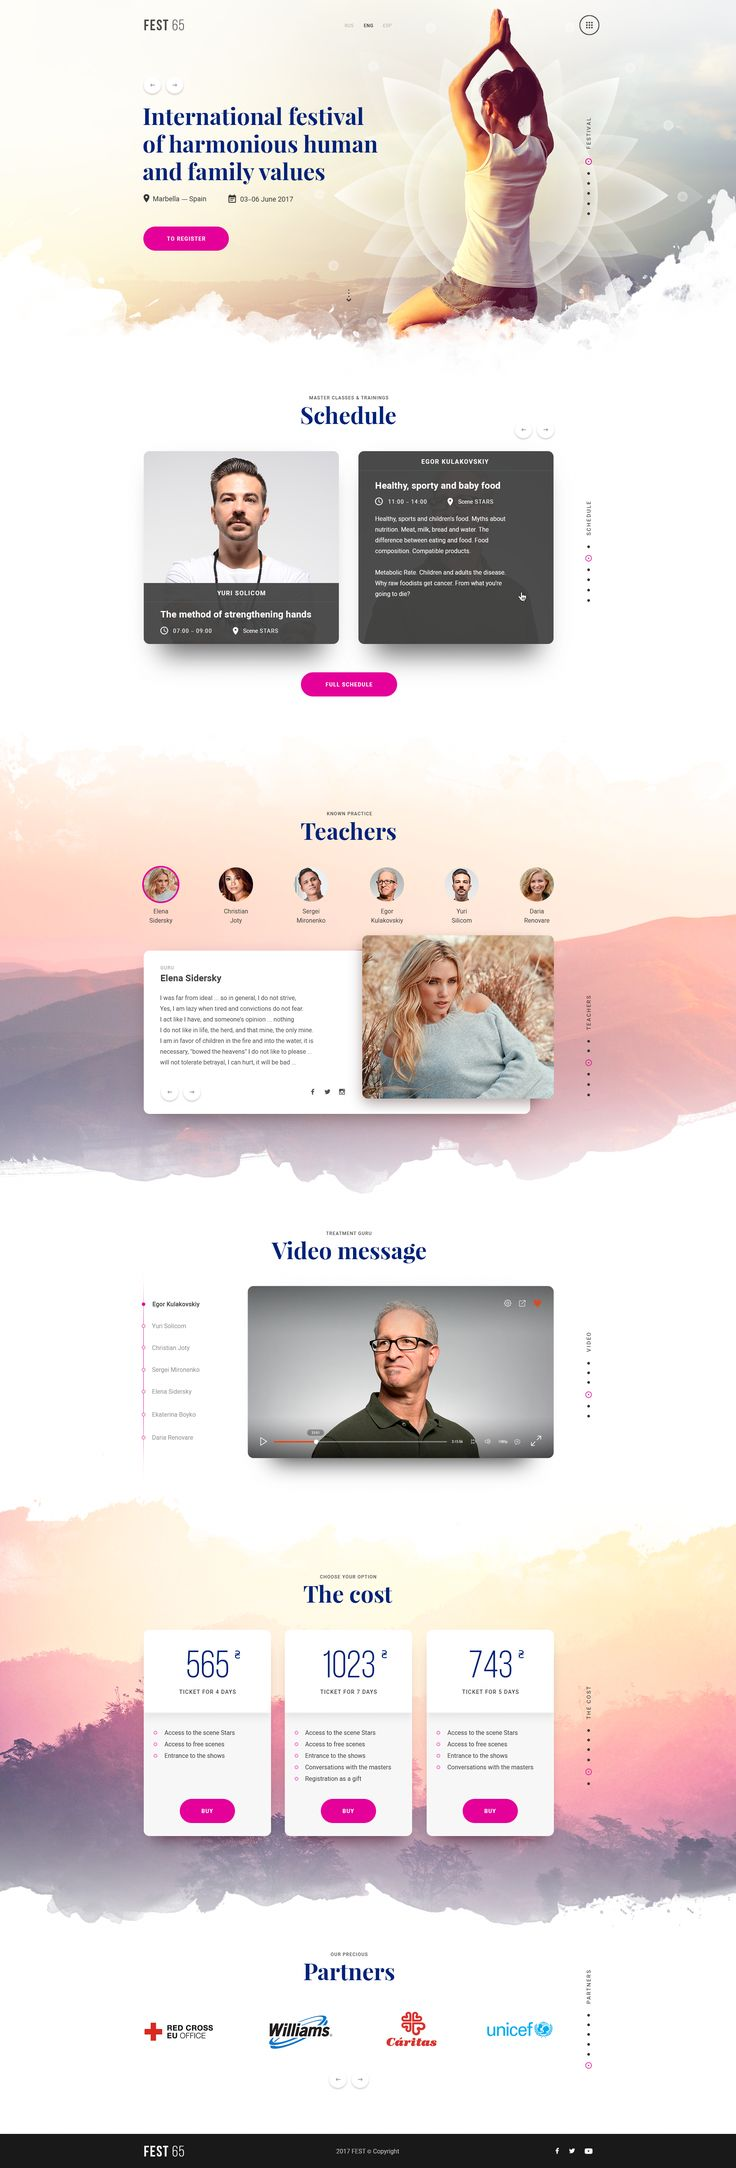 What i like about this design is it looks like a really relaxing website. But what i don't like is that i wish some of the images where a bit bigger. So i would make the pictures a bit bigger for the teachers.